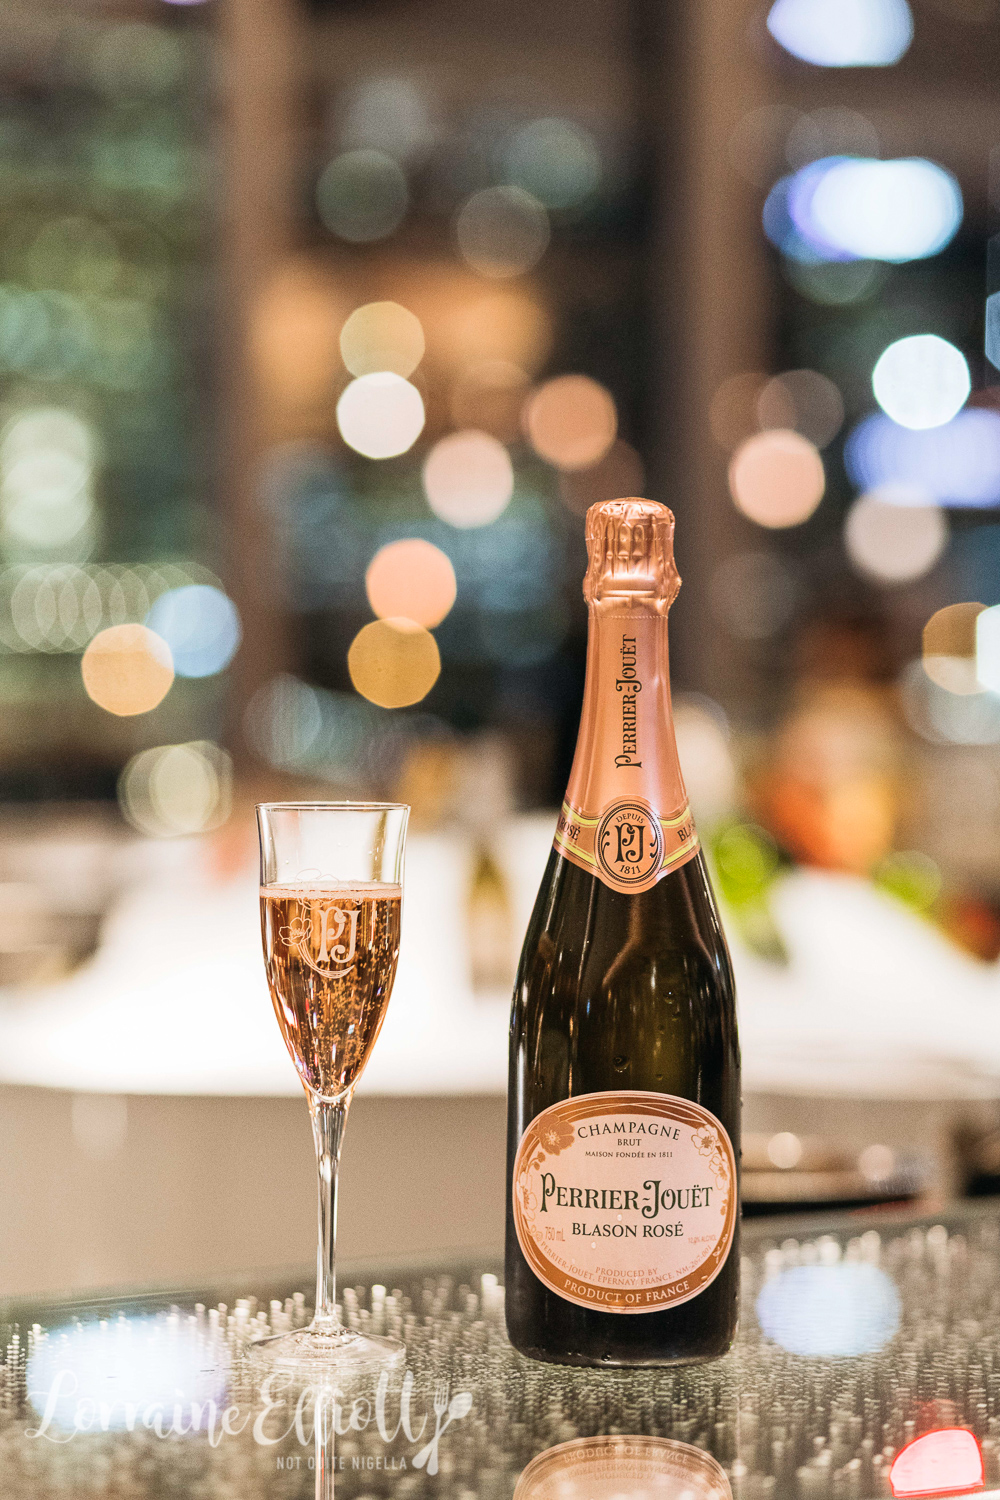 Champagne interesting facts